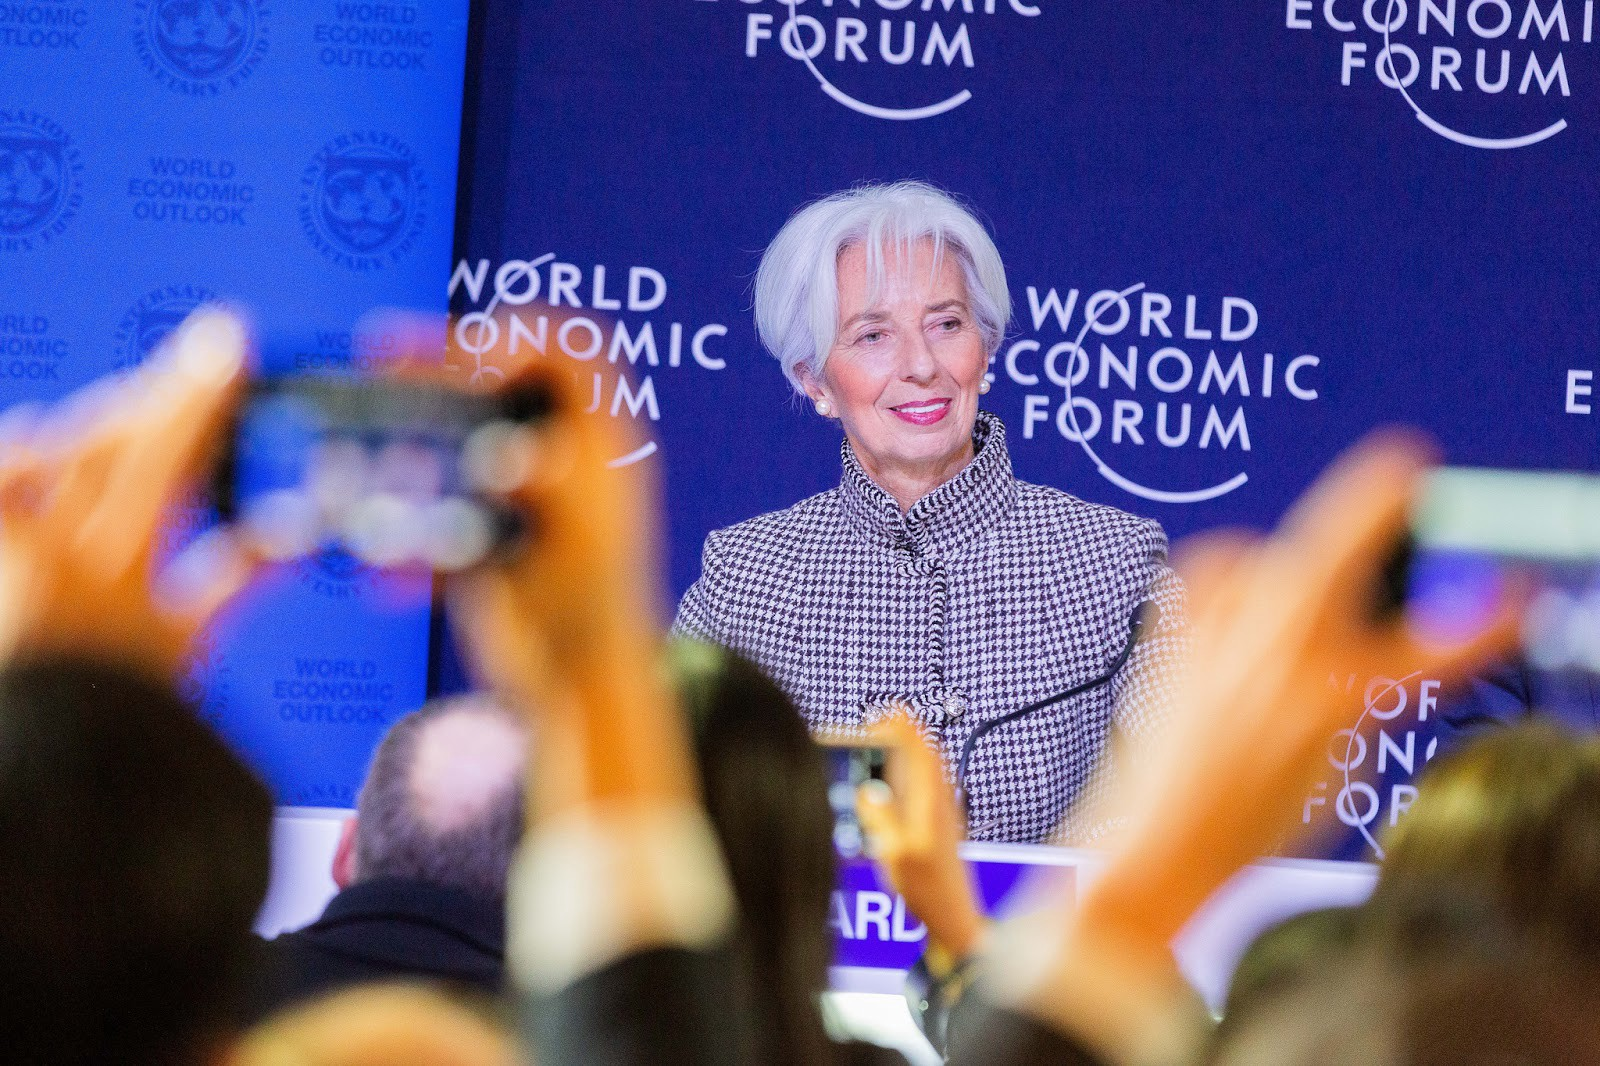 World Economy Slowing Amid Trade Tensions: IMF - Small Business, Big